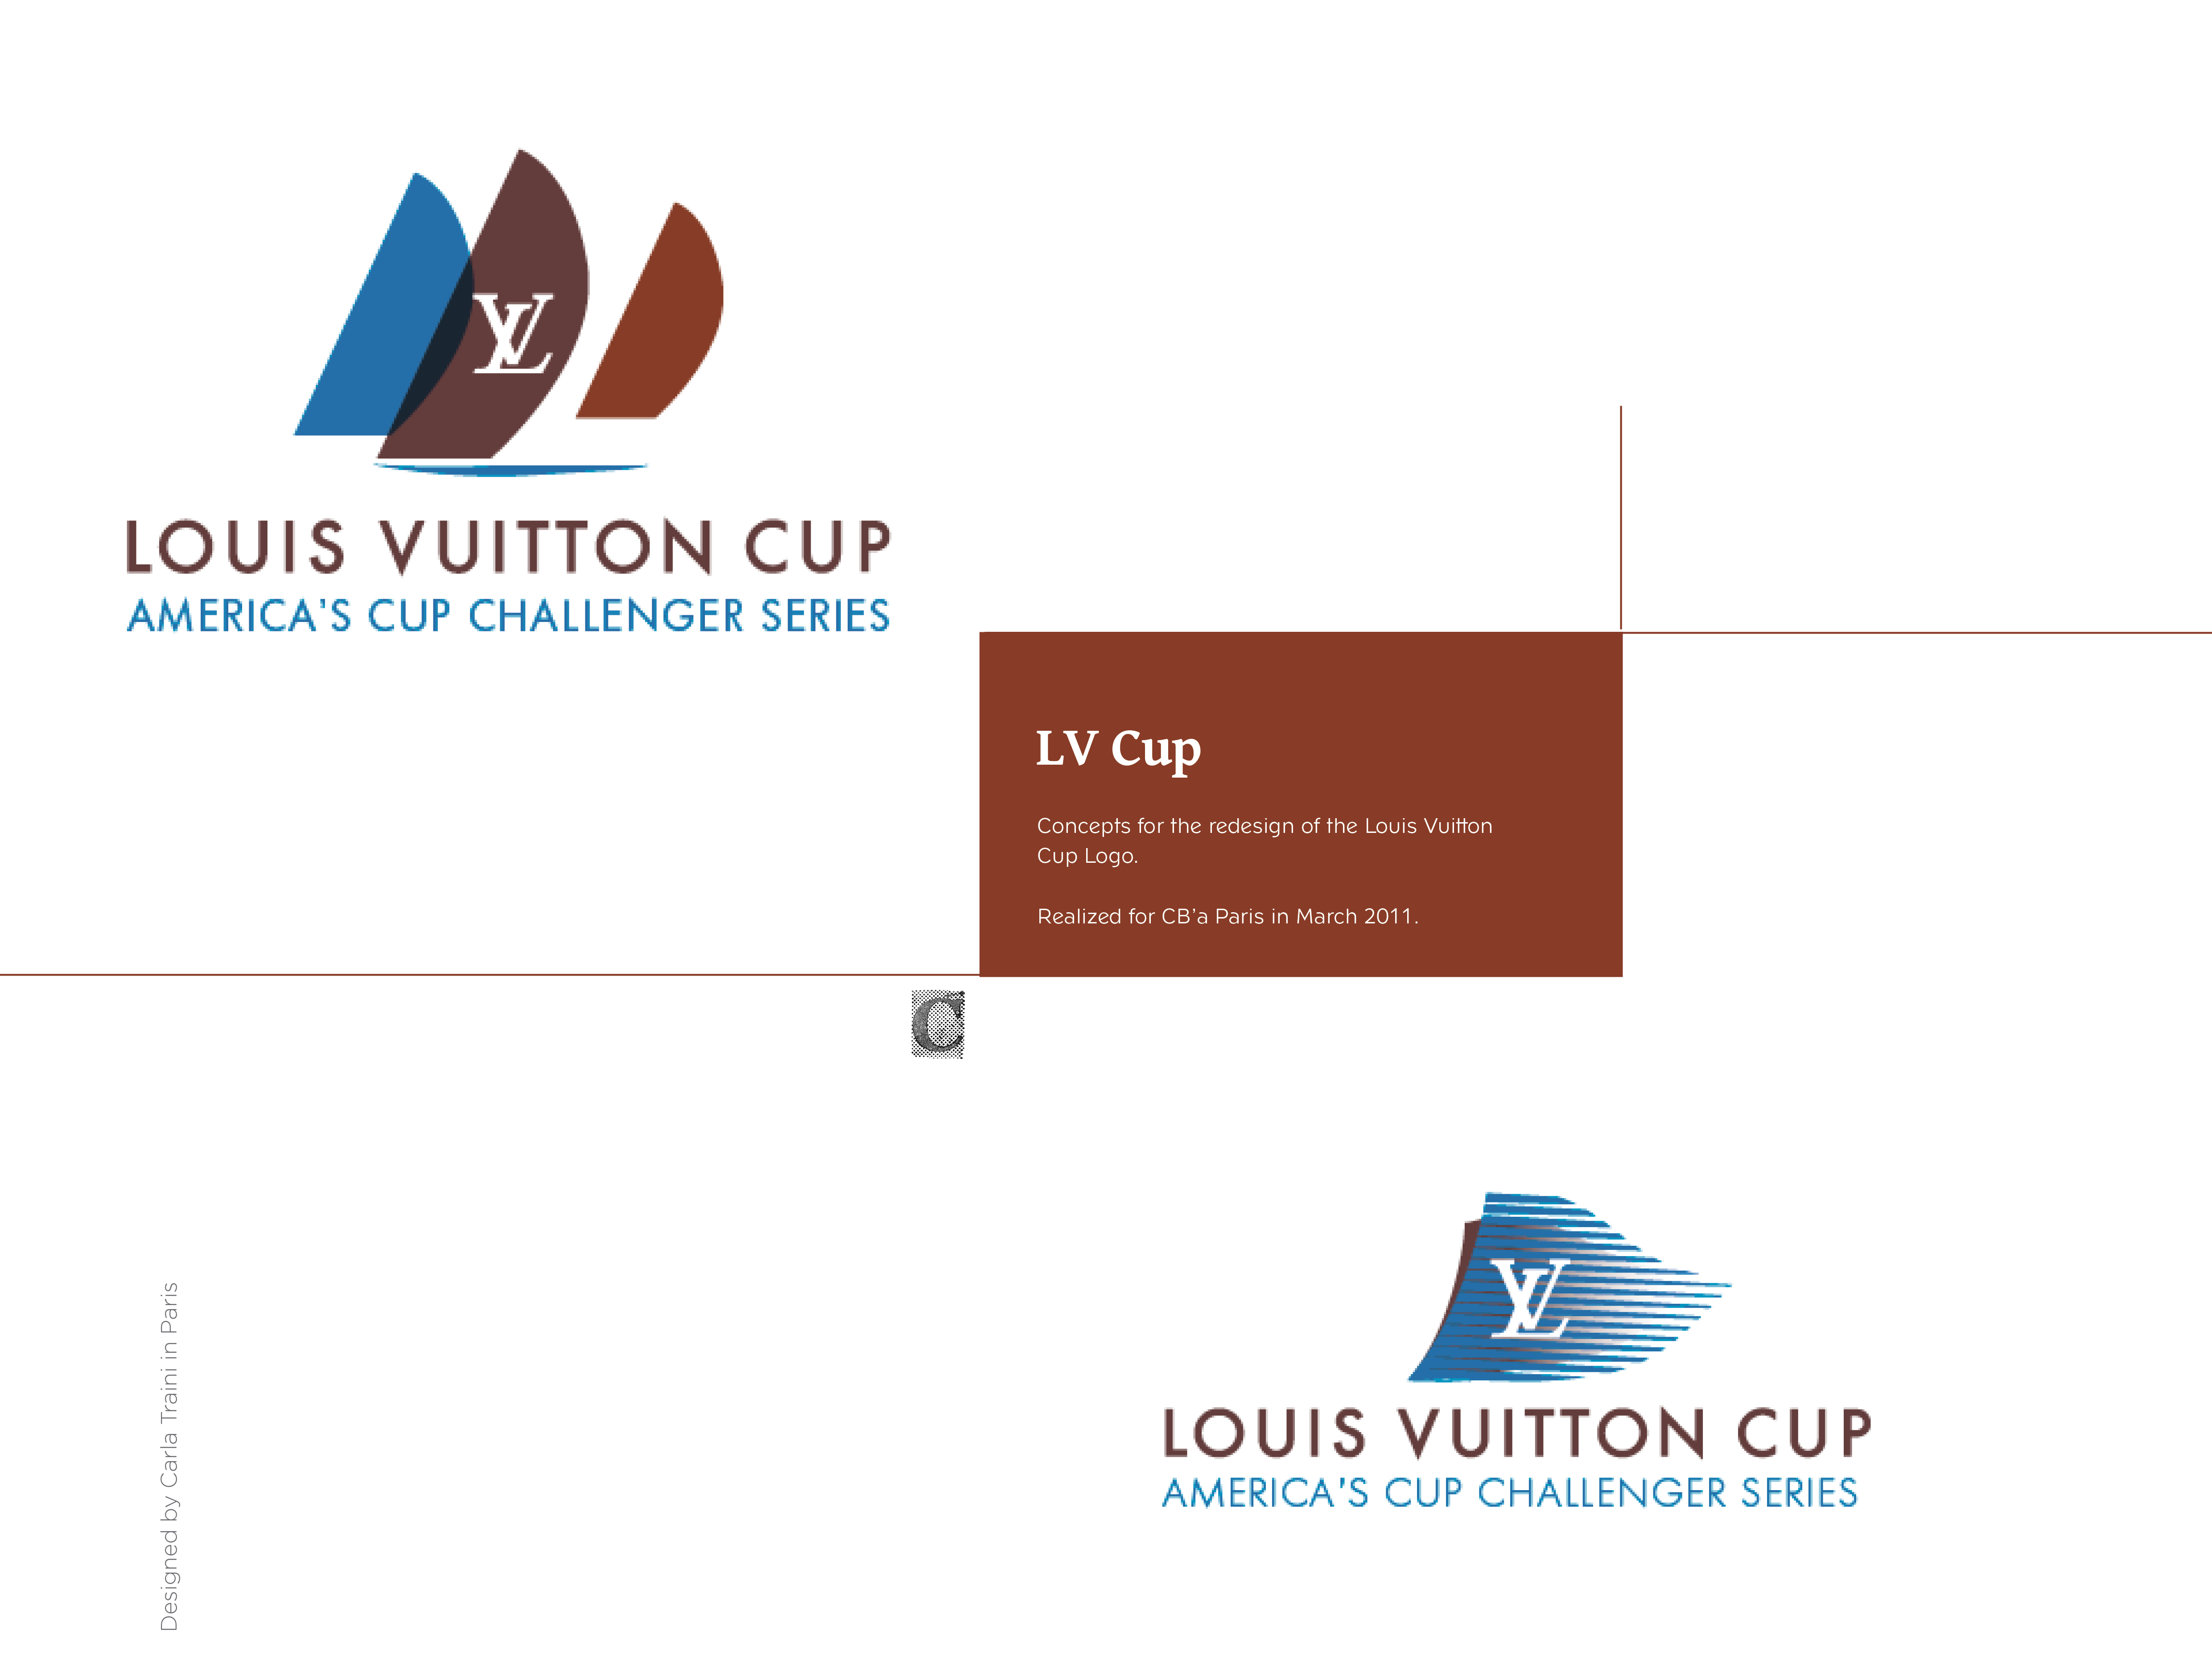 Louis Vuitton Cup